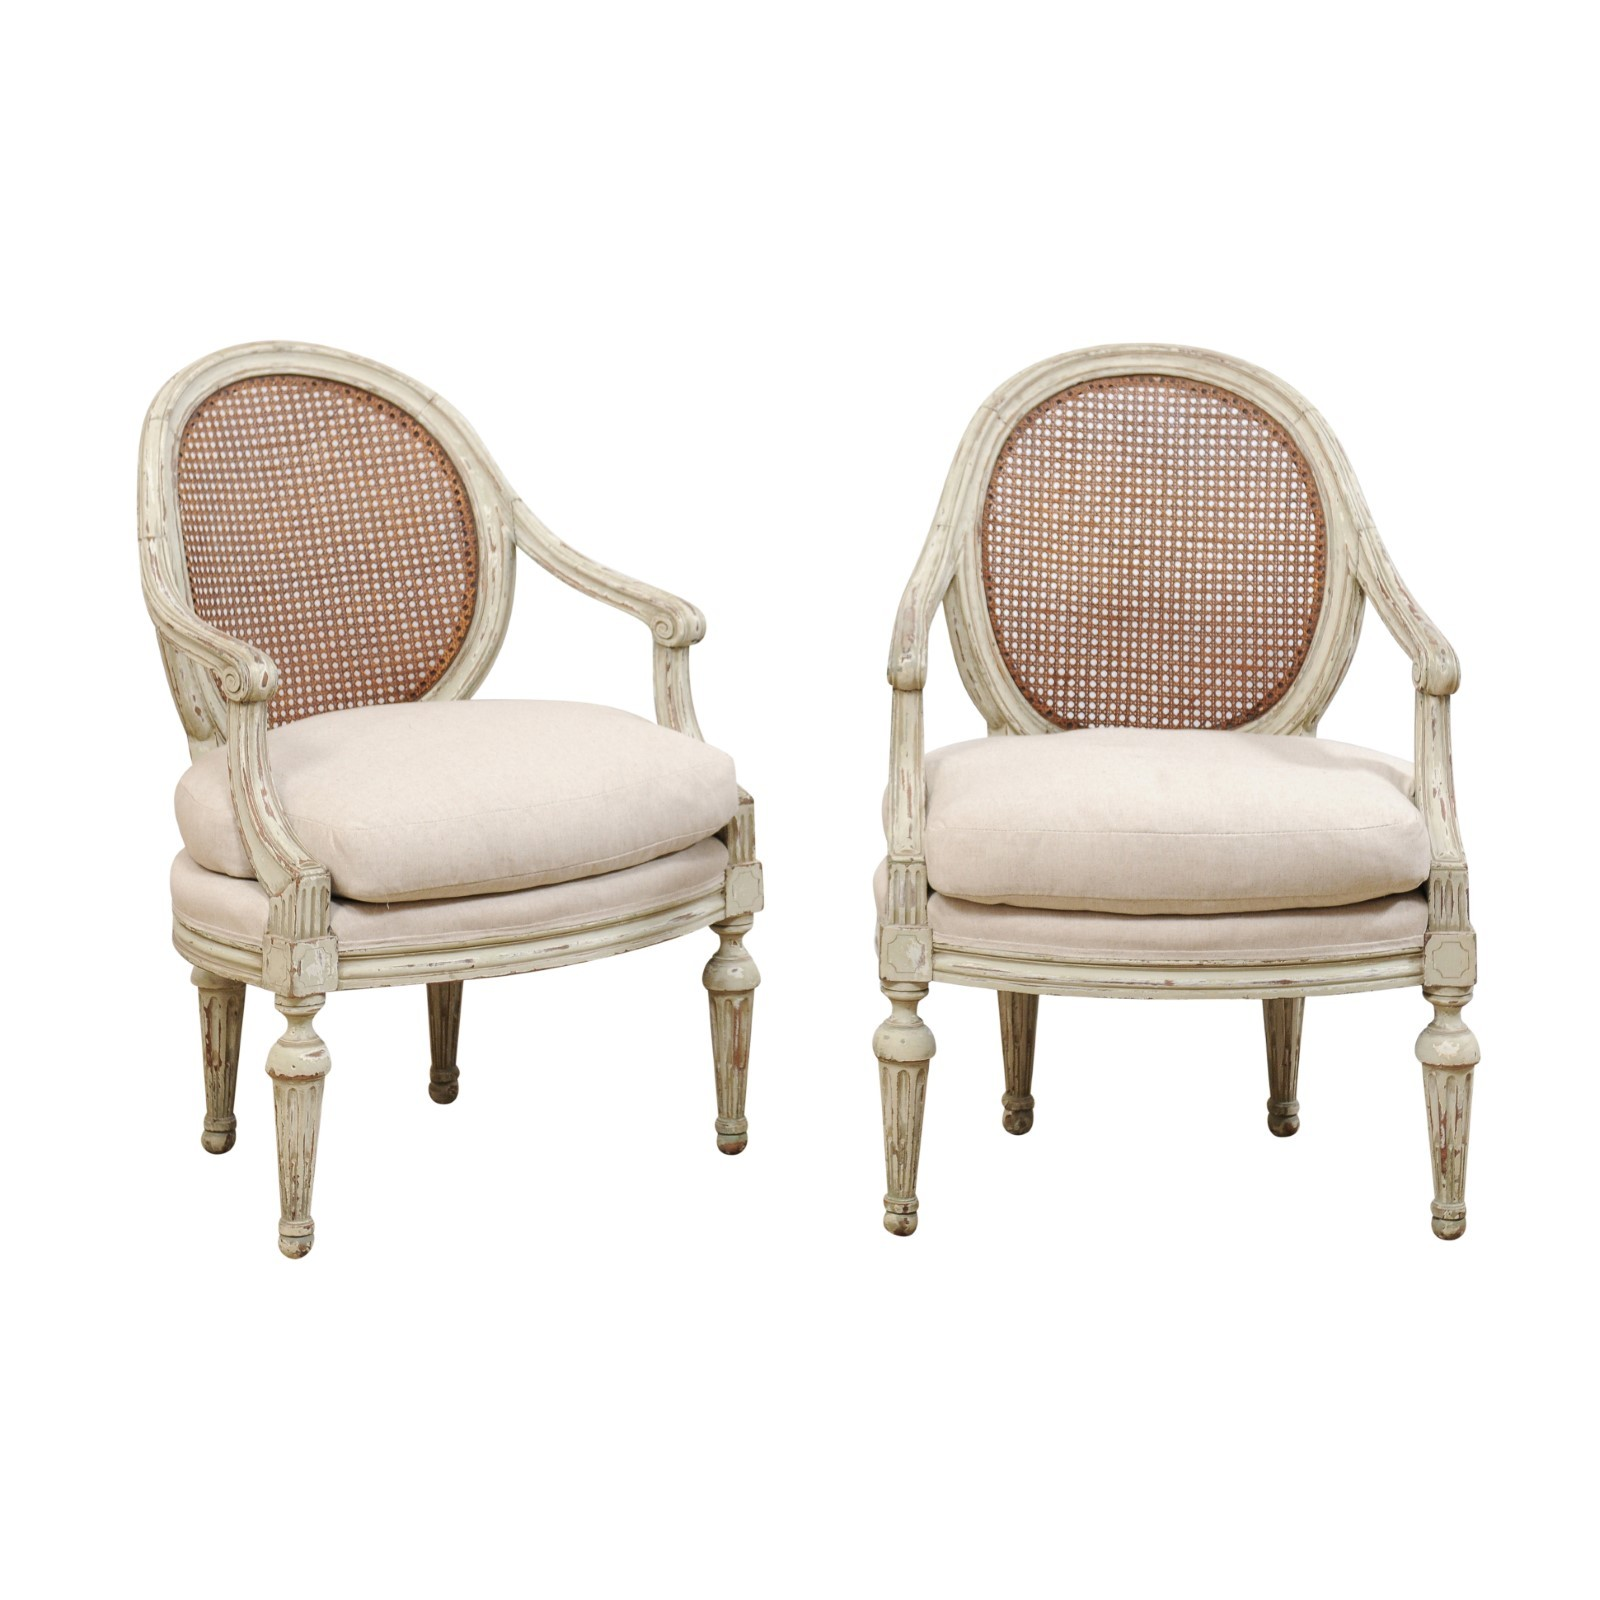 Antique Louis XVI Style Bergeres Chairs